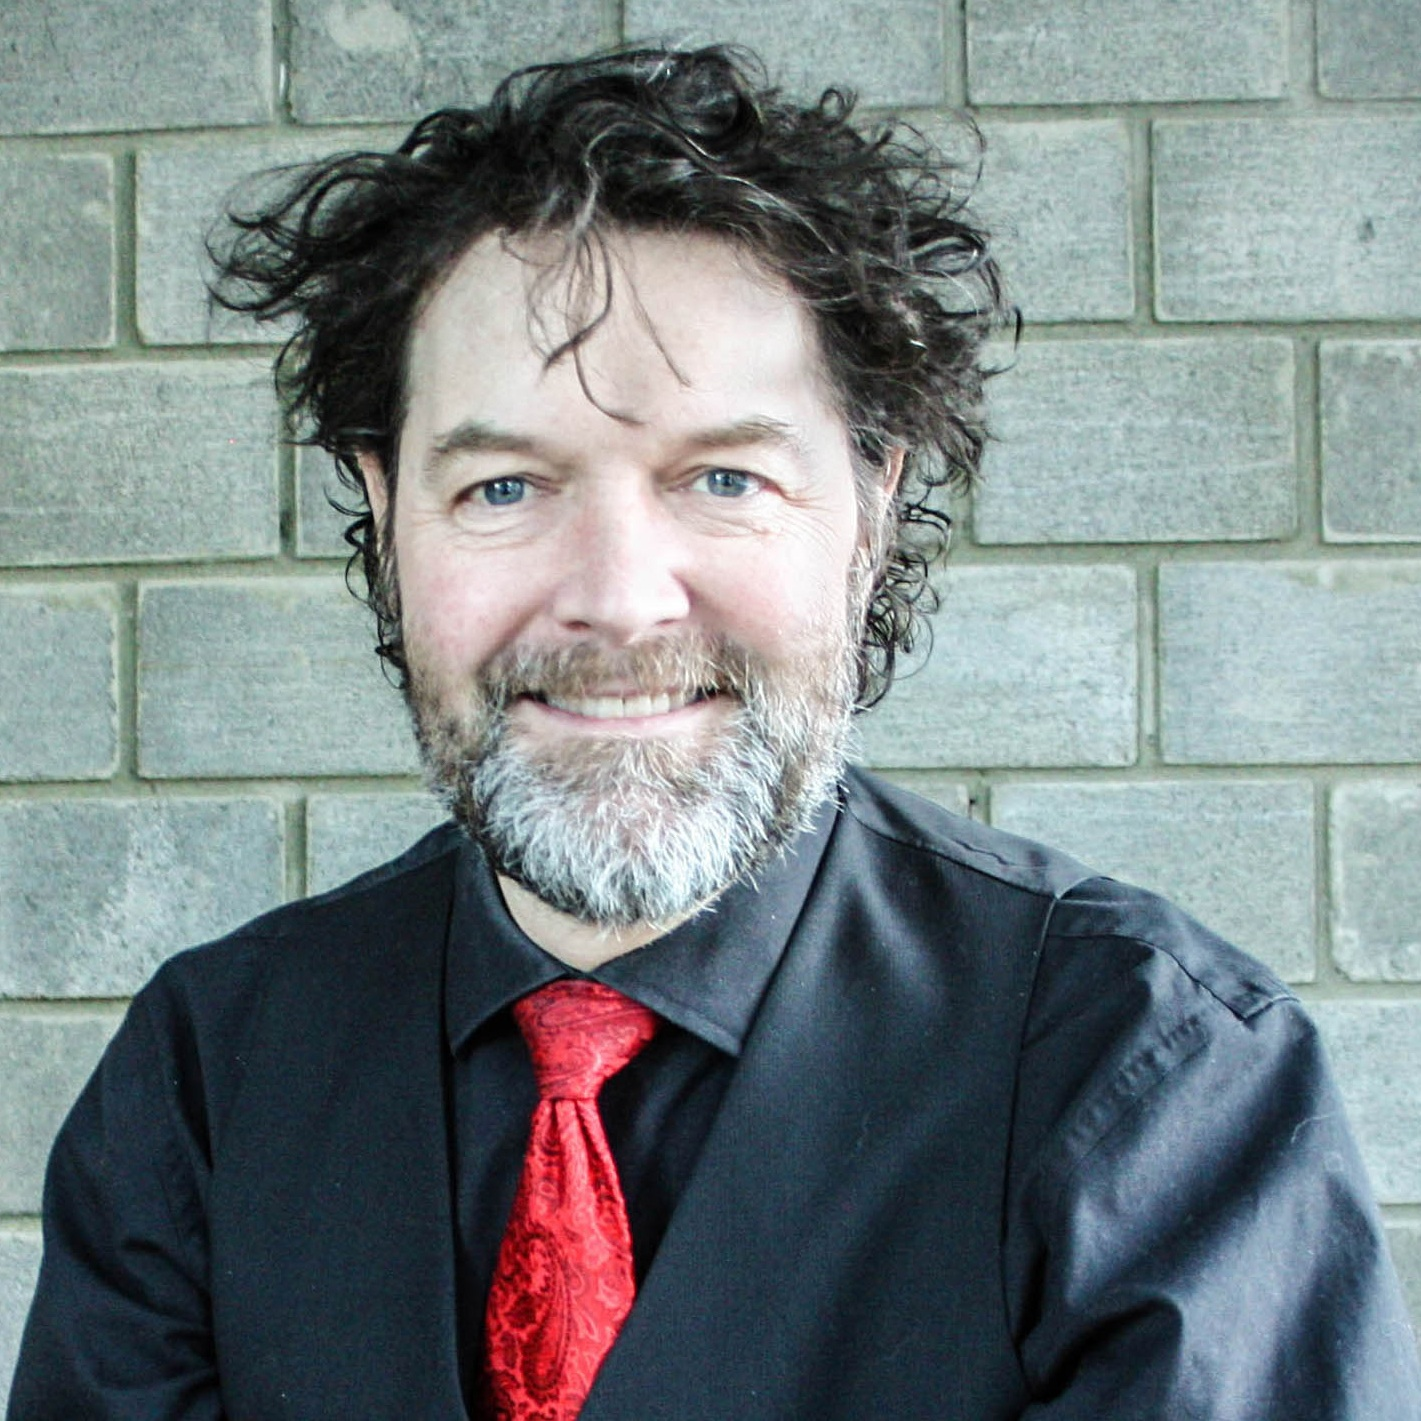 Dirk Van Stralen - Director of ProductionsDirk was in the original production of Cariboo Magi as the Reverend William Teller at Pacific Theatre. A four time Jessie Richardson Theatre Award Nominee for acting, Dirk is also an award-winning cartoonist and illustrator. His single panel cartoon, vanstralen, appeared in Vancouver's The Georgia Straight for 17 years. He is the illustrator of two wordless kids books: Ben's Big Dig and Ben's Bunny Trouble. He directed 17 by Morag Northey, which premiered at the Sunset Theatre in 2017, having been developed through the Sunset Theatre's Exploration Series. Dirk's own art show, Failing Better, a retrospective of Dirk's 30+ years of work as a visual artist, cartoonist, illustrator and graphic designer, had a lengthy exhibit at Island Mountain Arts Gallery in Wells, BC. He also directed Mamma's Boy, by Mike Delamont (God Is A Scottish Drag Queen). Most recently, Dirk finished a successful run as director and designer of The Occupation of Heather Rose at Theatre Northwest. Dirk has joined the Sunset Theatre's creative team as Director of Productions, a position that was developed as part of the Sunset Theatre's long-term strategic plan.